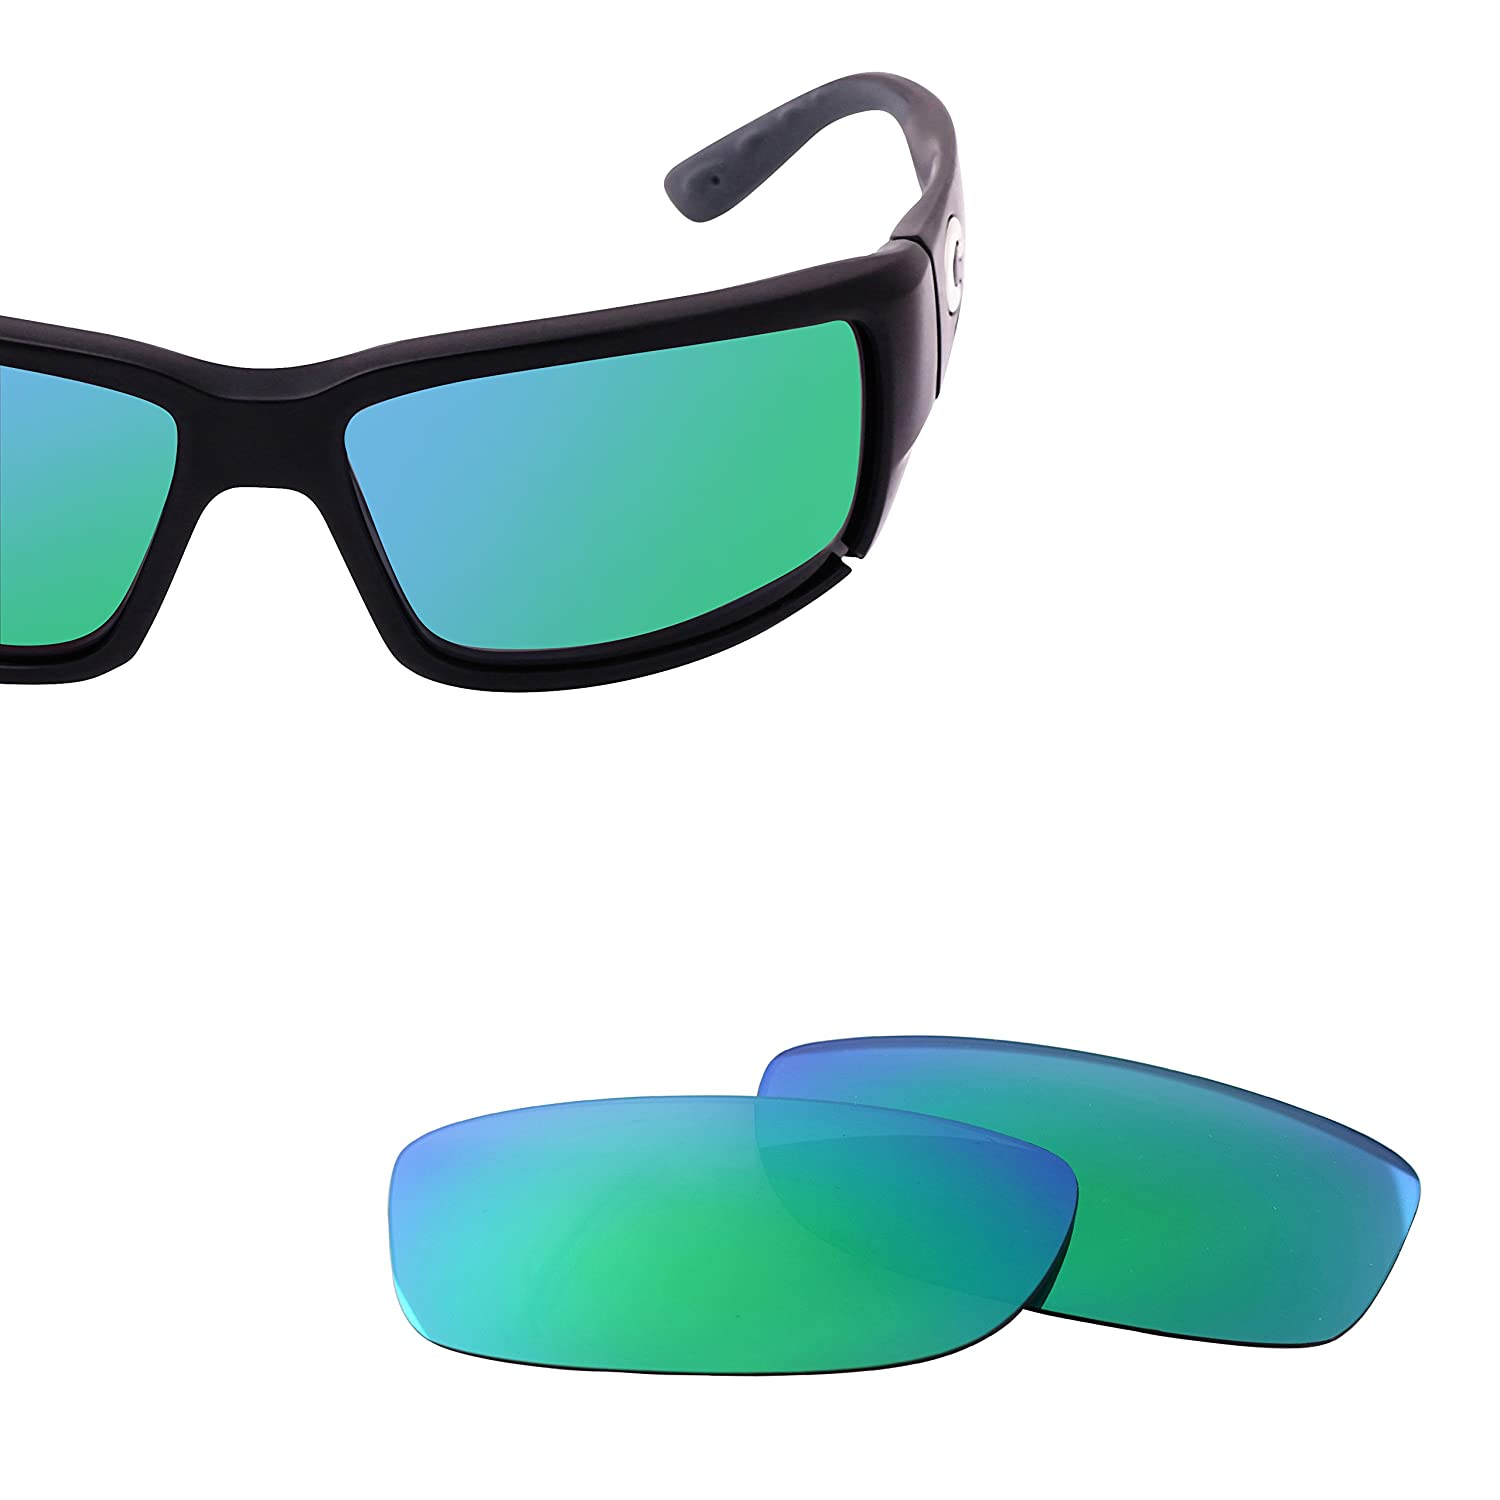 30ffca753a8 Amazon.com  LenzFlip Replacement Lenses Compatible with Costa Del Mar  FANTAIL -Brown w Green  Clothing